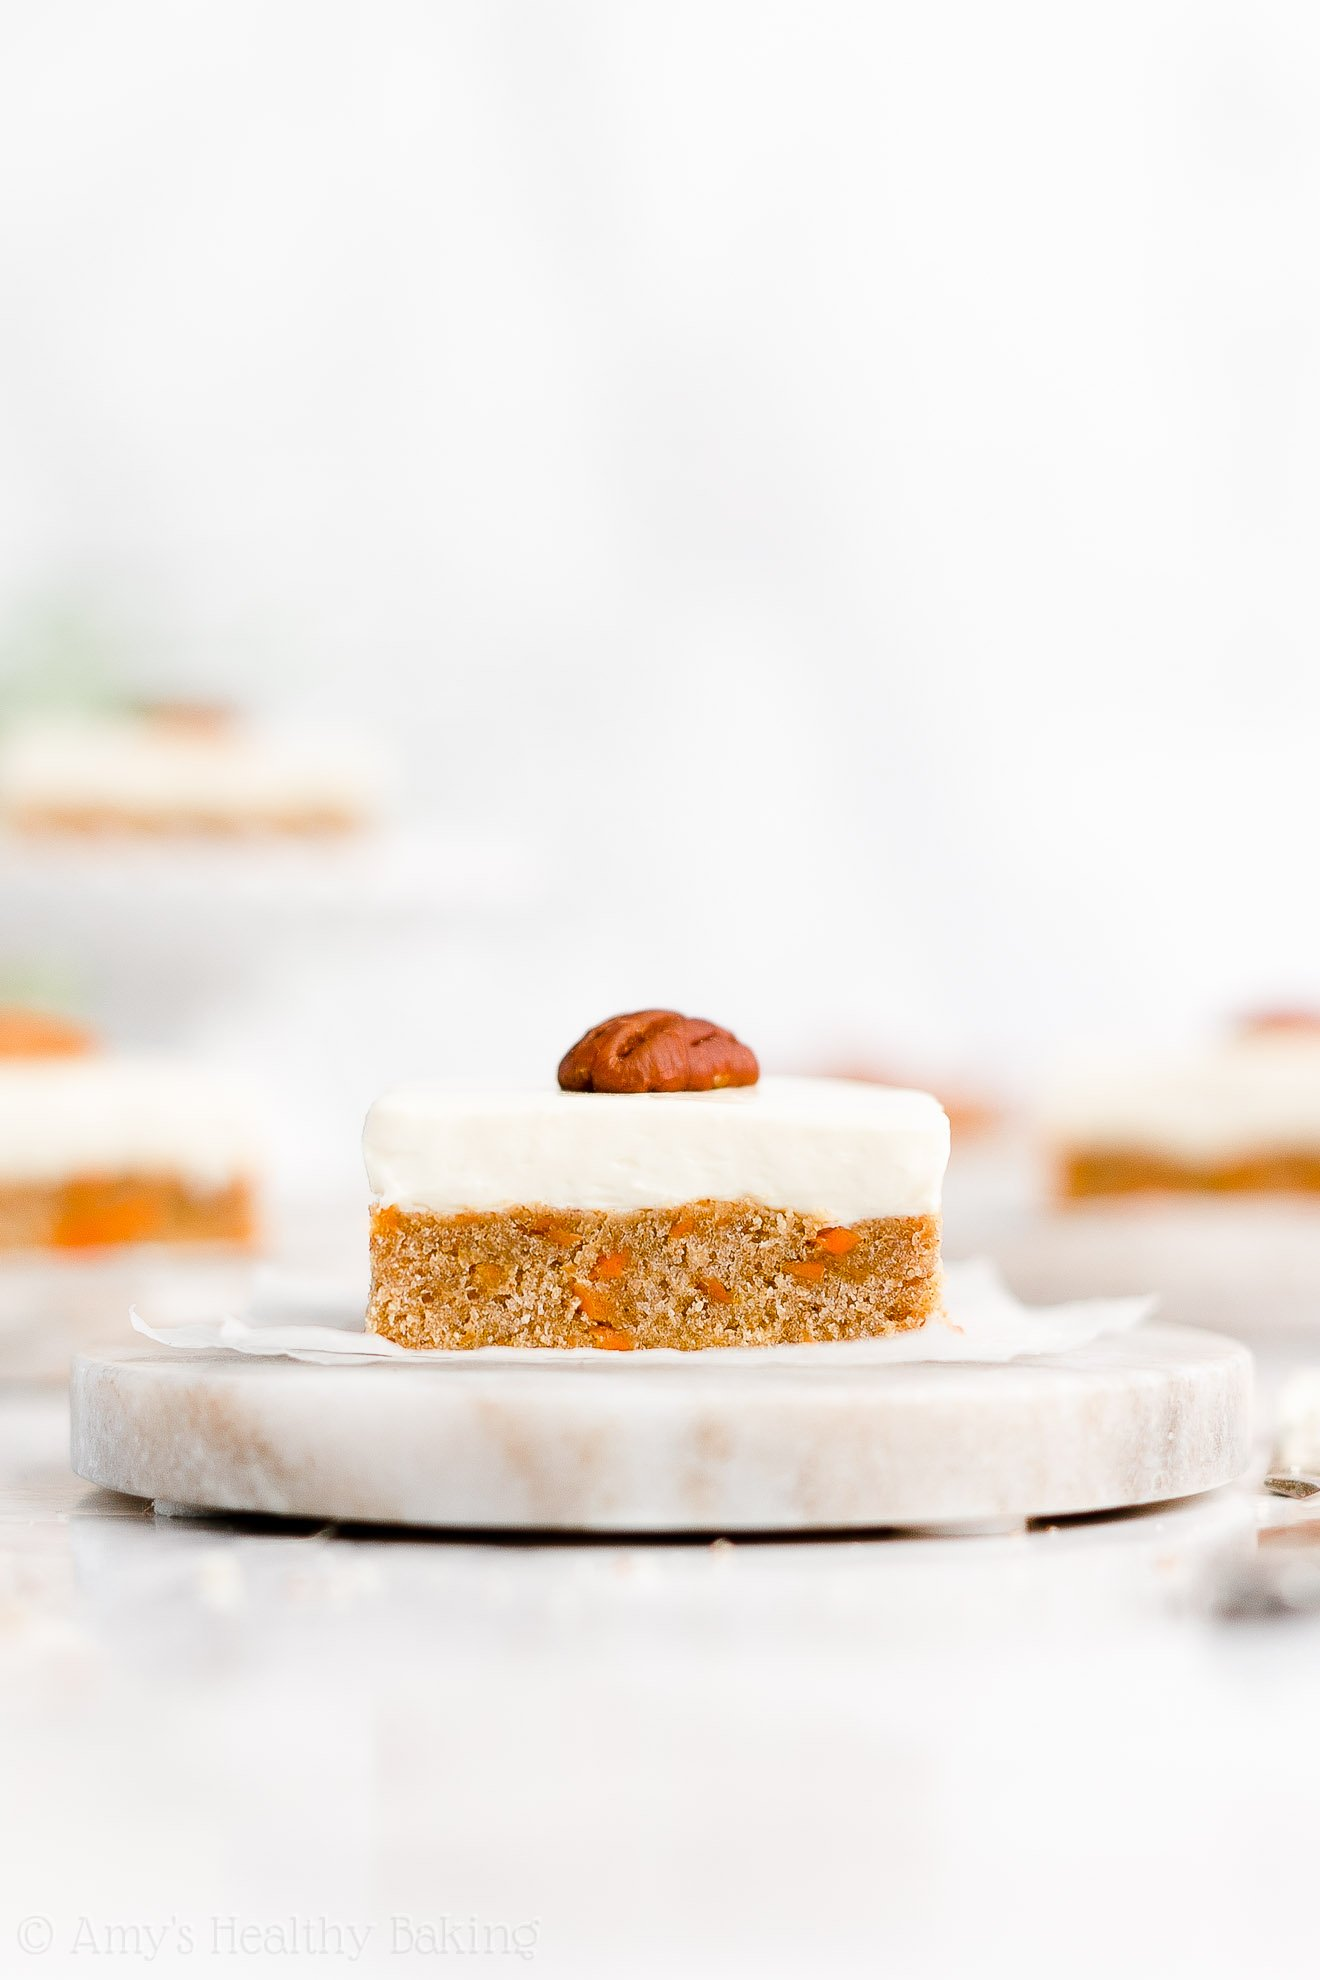 Easy Healthy Homemade Low Calorie Carrot Cake Cookie Bars + Cream Cheese Frosting